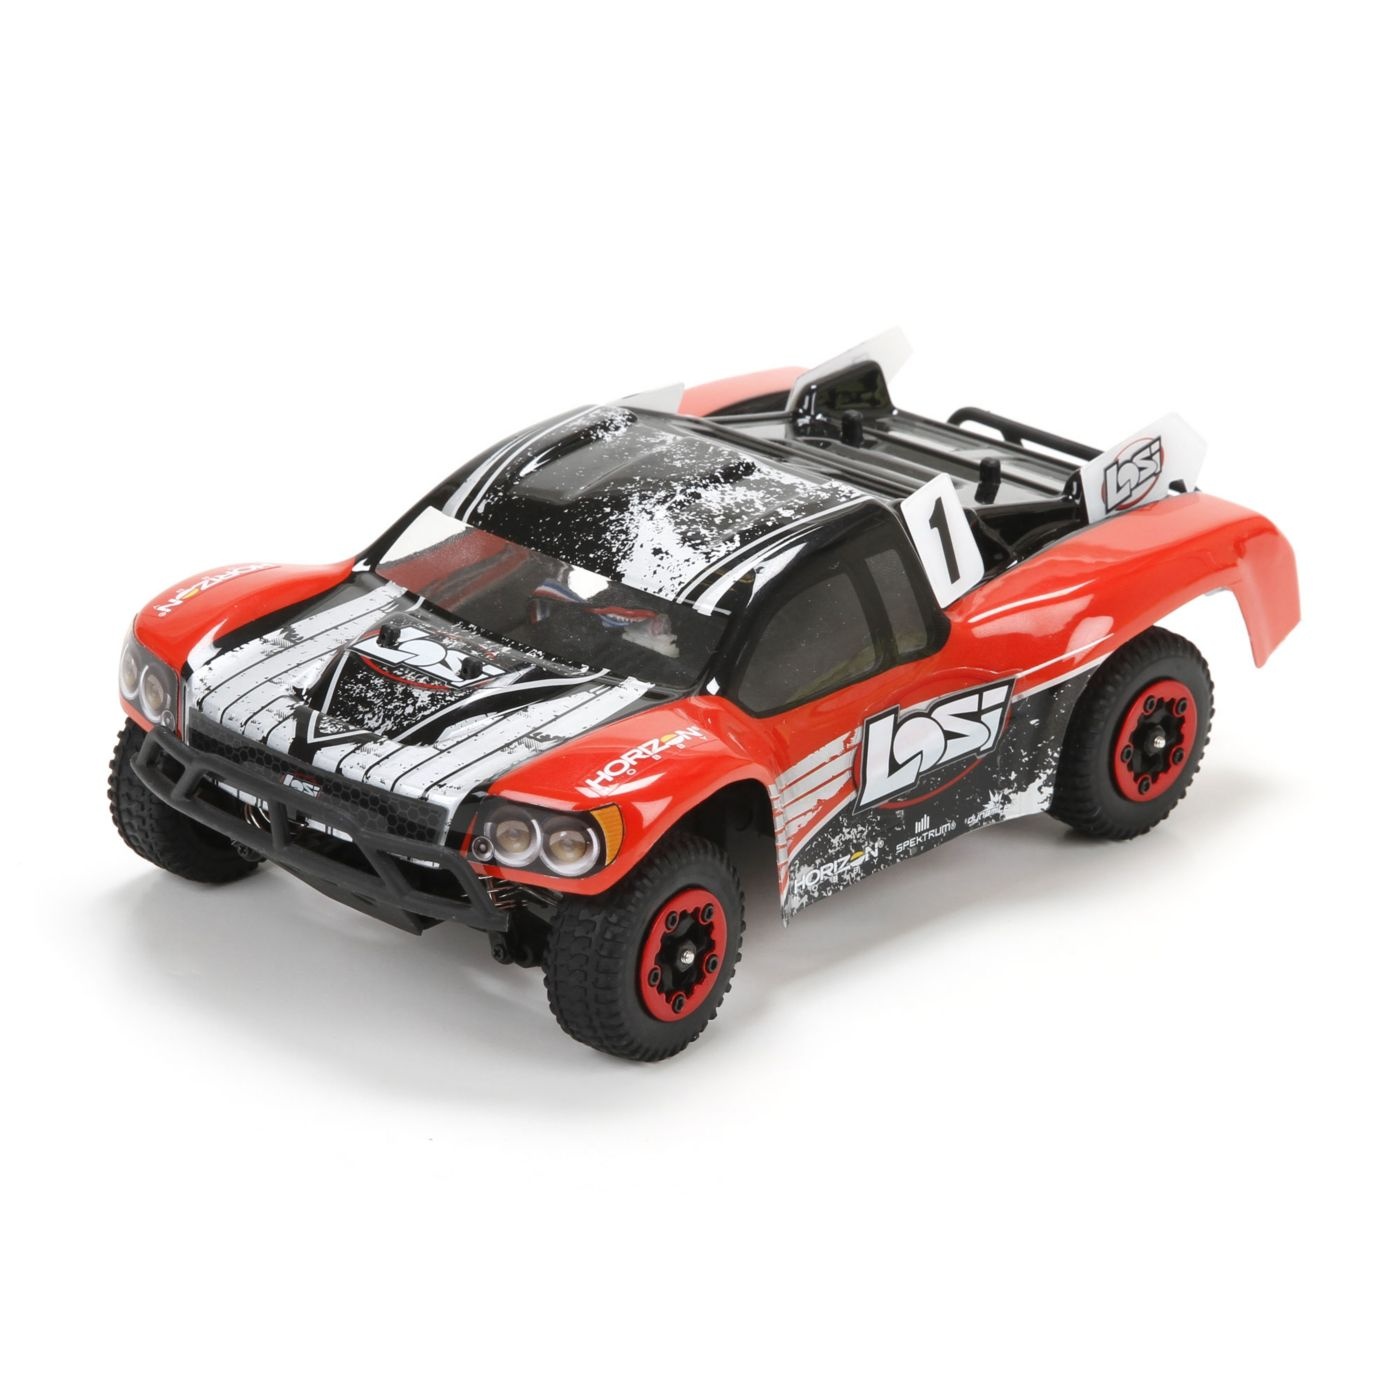 Losi 1/24 Micro SCTE Brushless 4WD RTR Red - SNHE